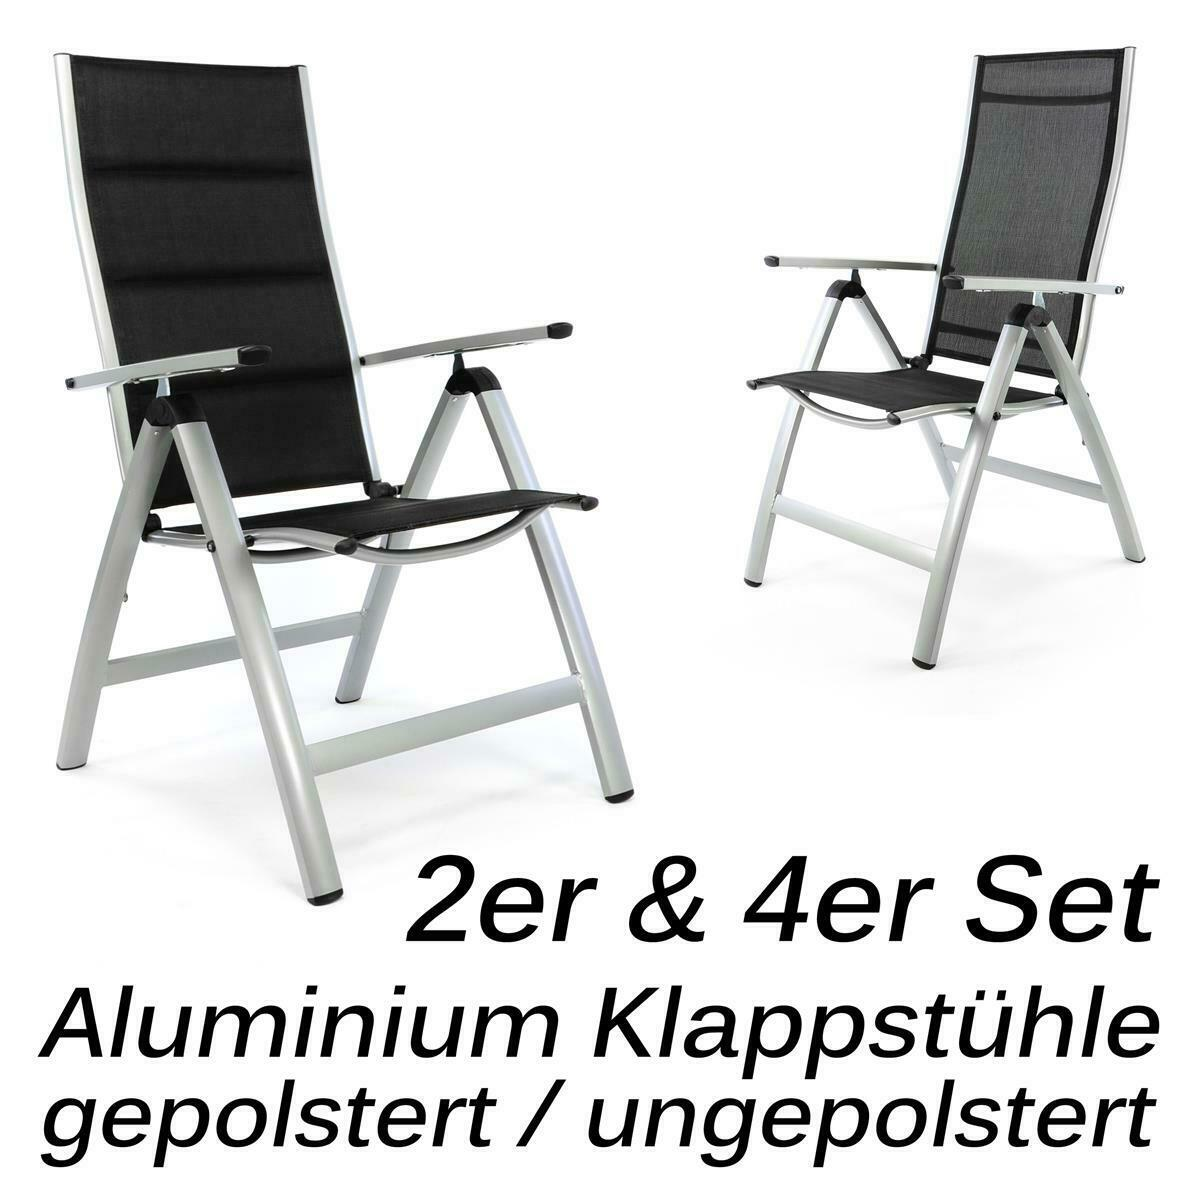 luxus gartenstuhl alu klappstuhl mit ohne polster menge w hlbar hochlehner eur 46 85. Black Bedroom Furniture Sets. Home Design Ideas